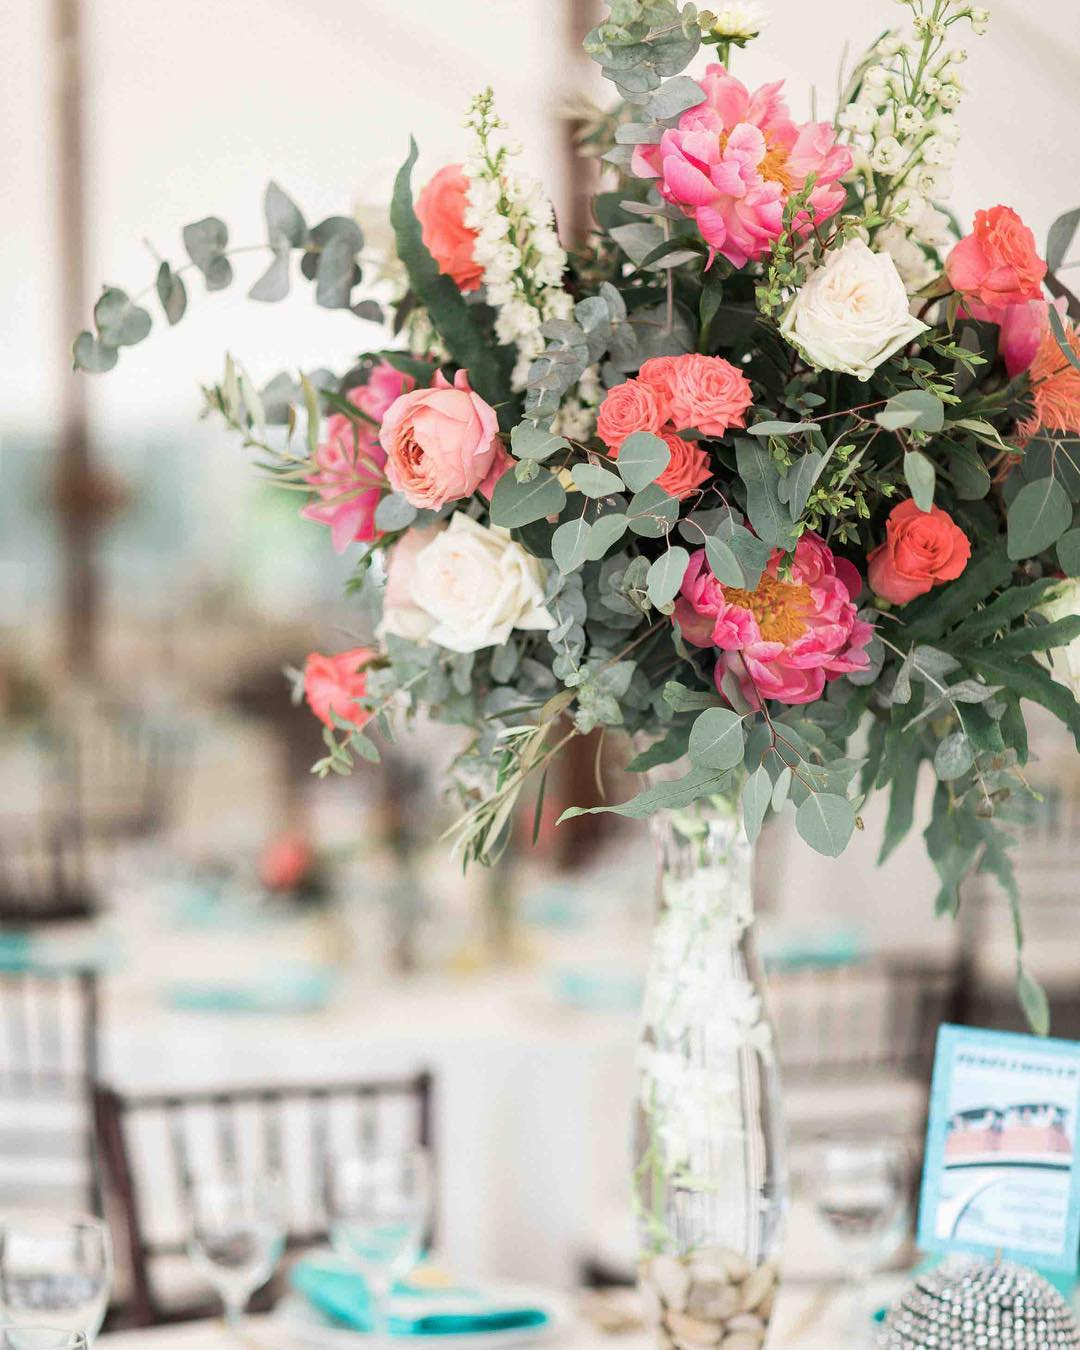 {coral} photo | @jharperphoto . . #coral #oceanside #coastofmaine #mainewedding #centerpiece #bigandbeautiful #peonies #gardenroses #eucalyptus #wowfactor #lovely